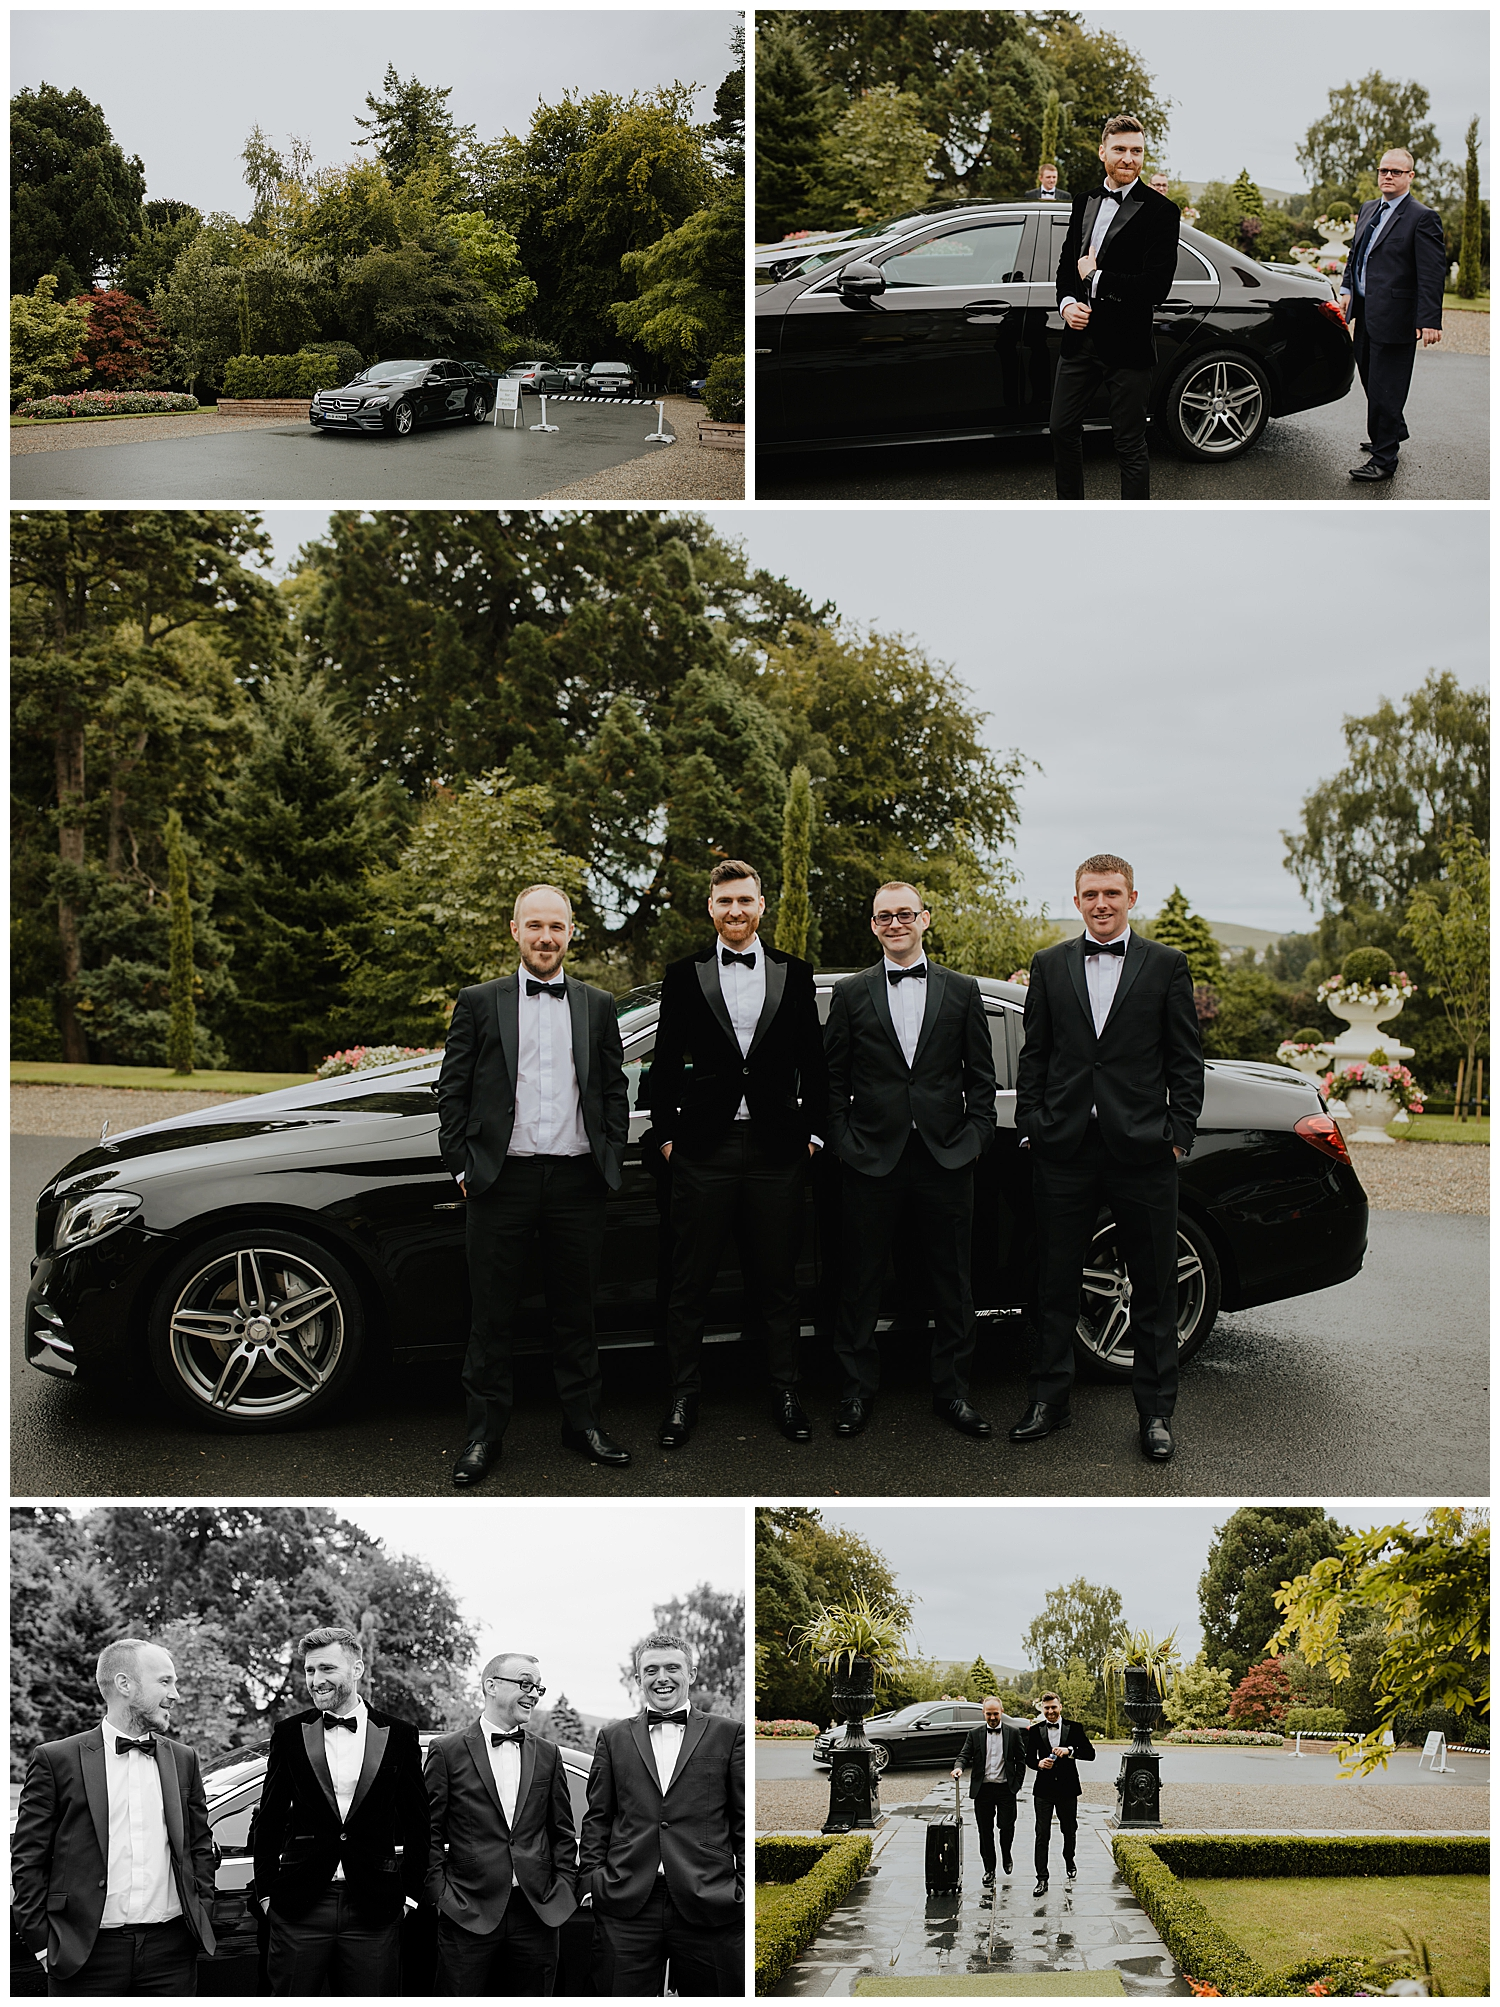 a&c_tinakilly_black_tie_wedding_photographer_livia_figueiredo_17.jpg